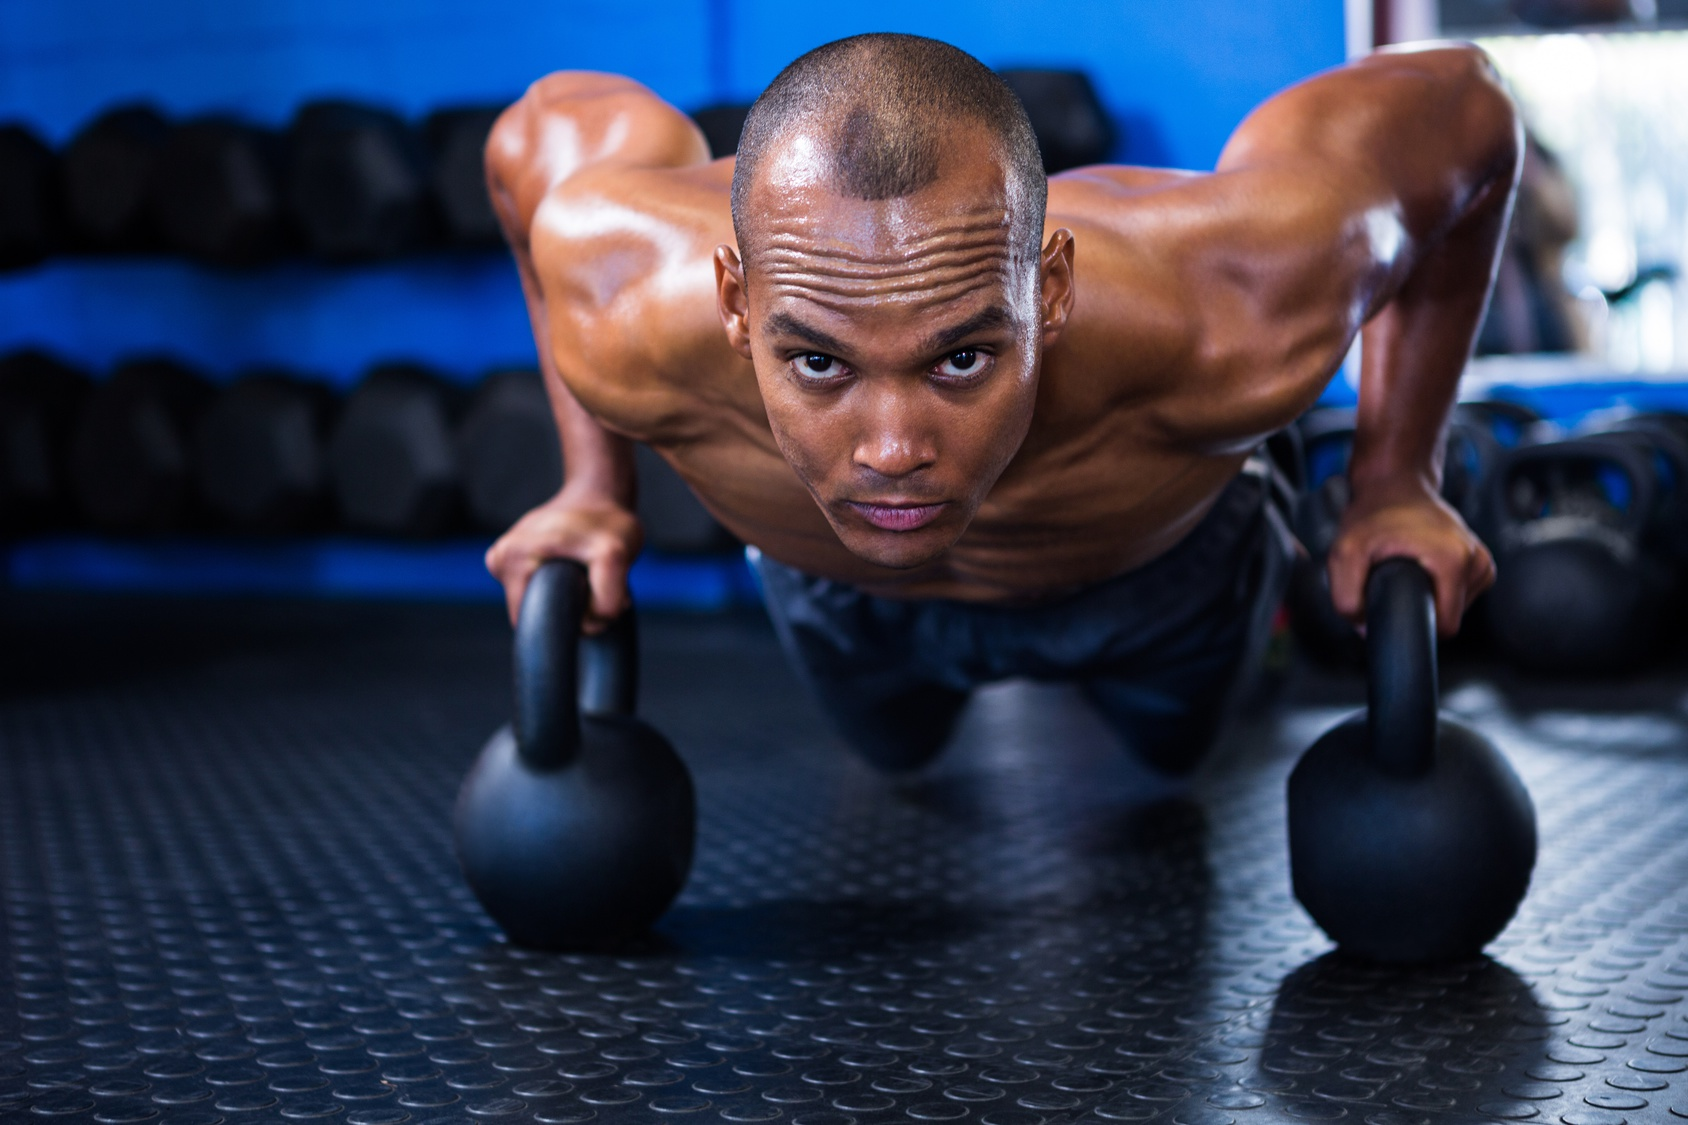 Man doing push-ups with kettlebells